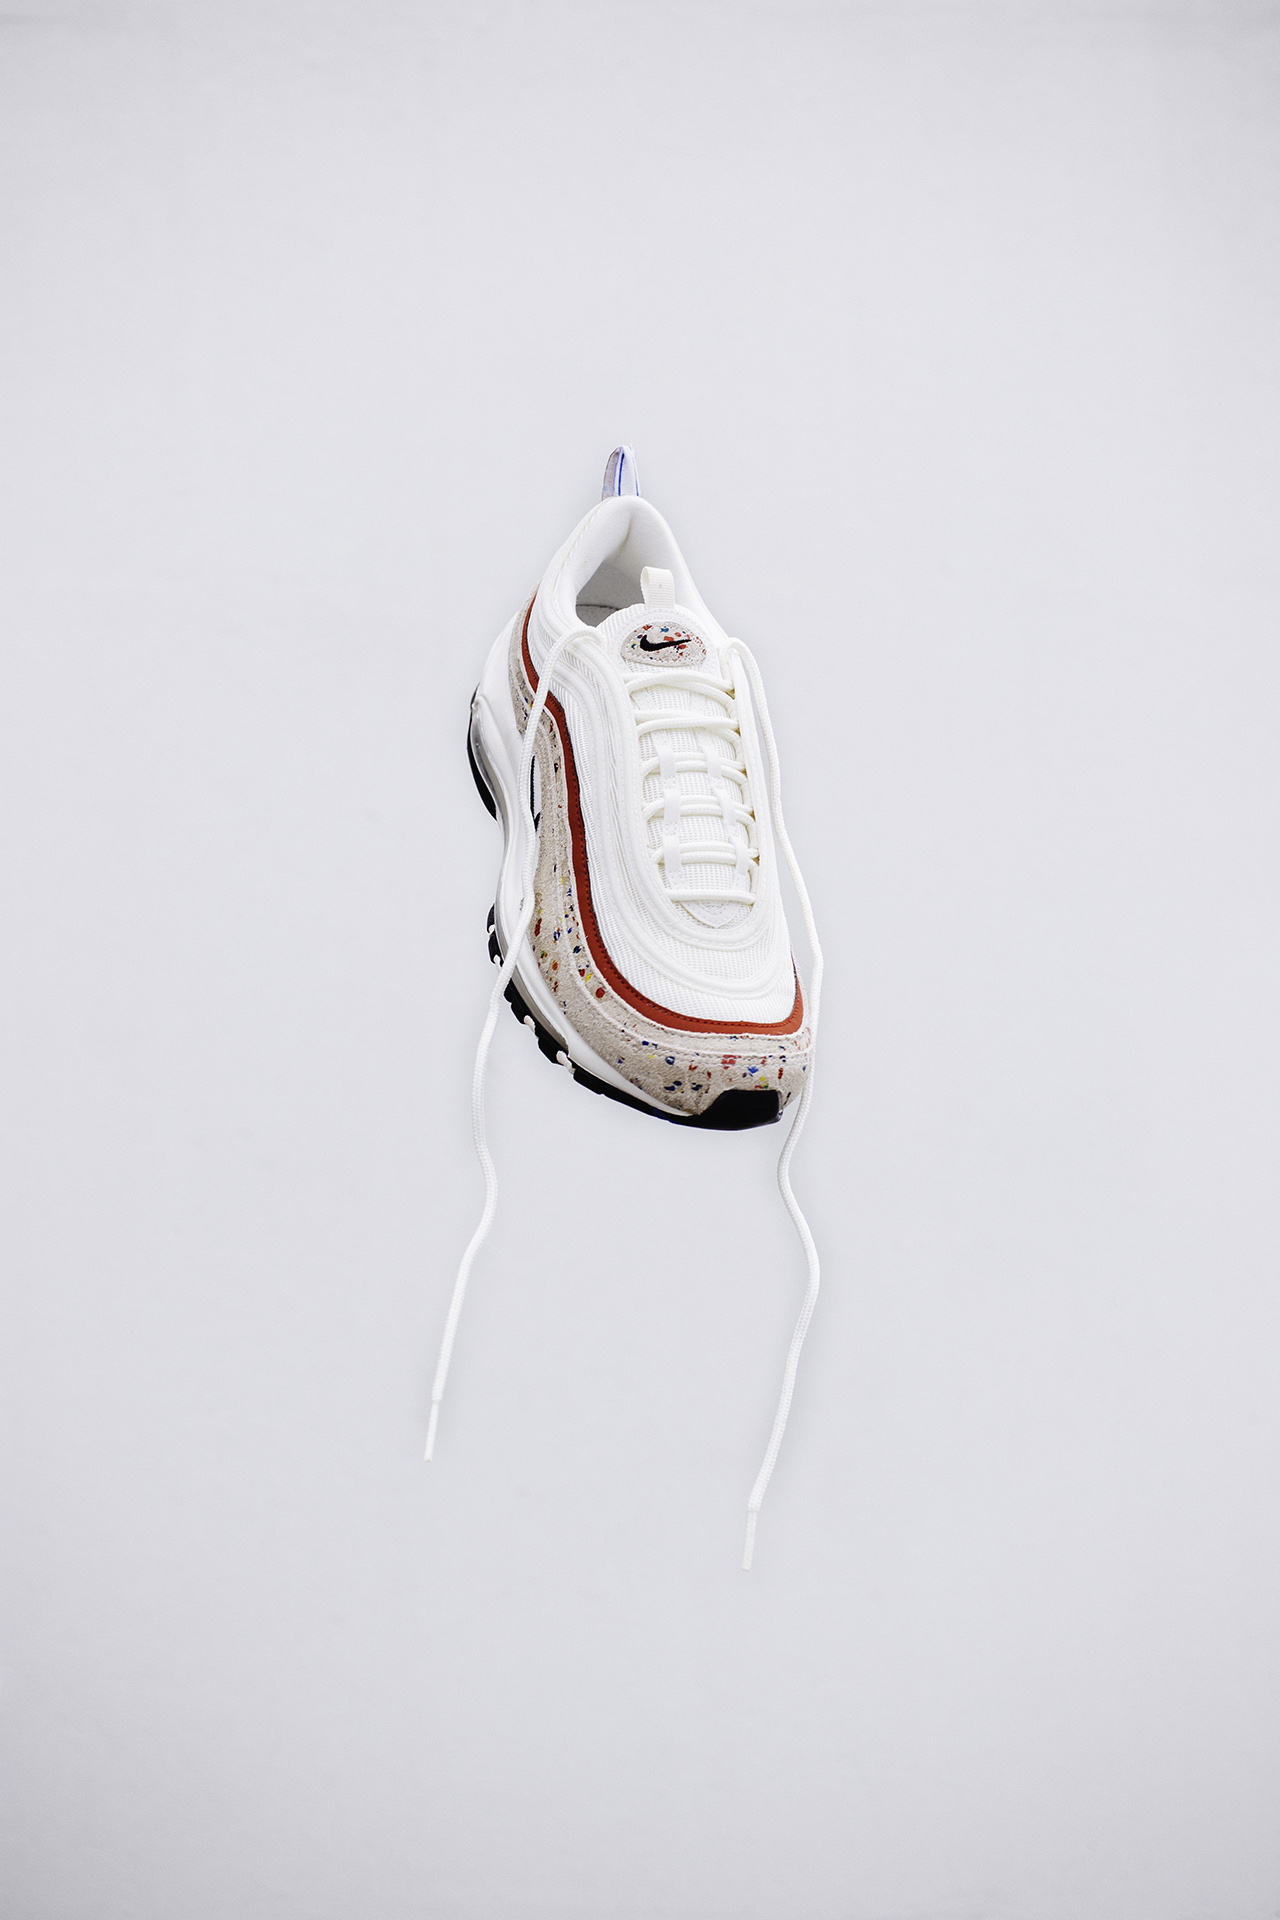 nike-paint-splatter-shoe.jpg